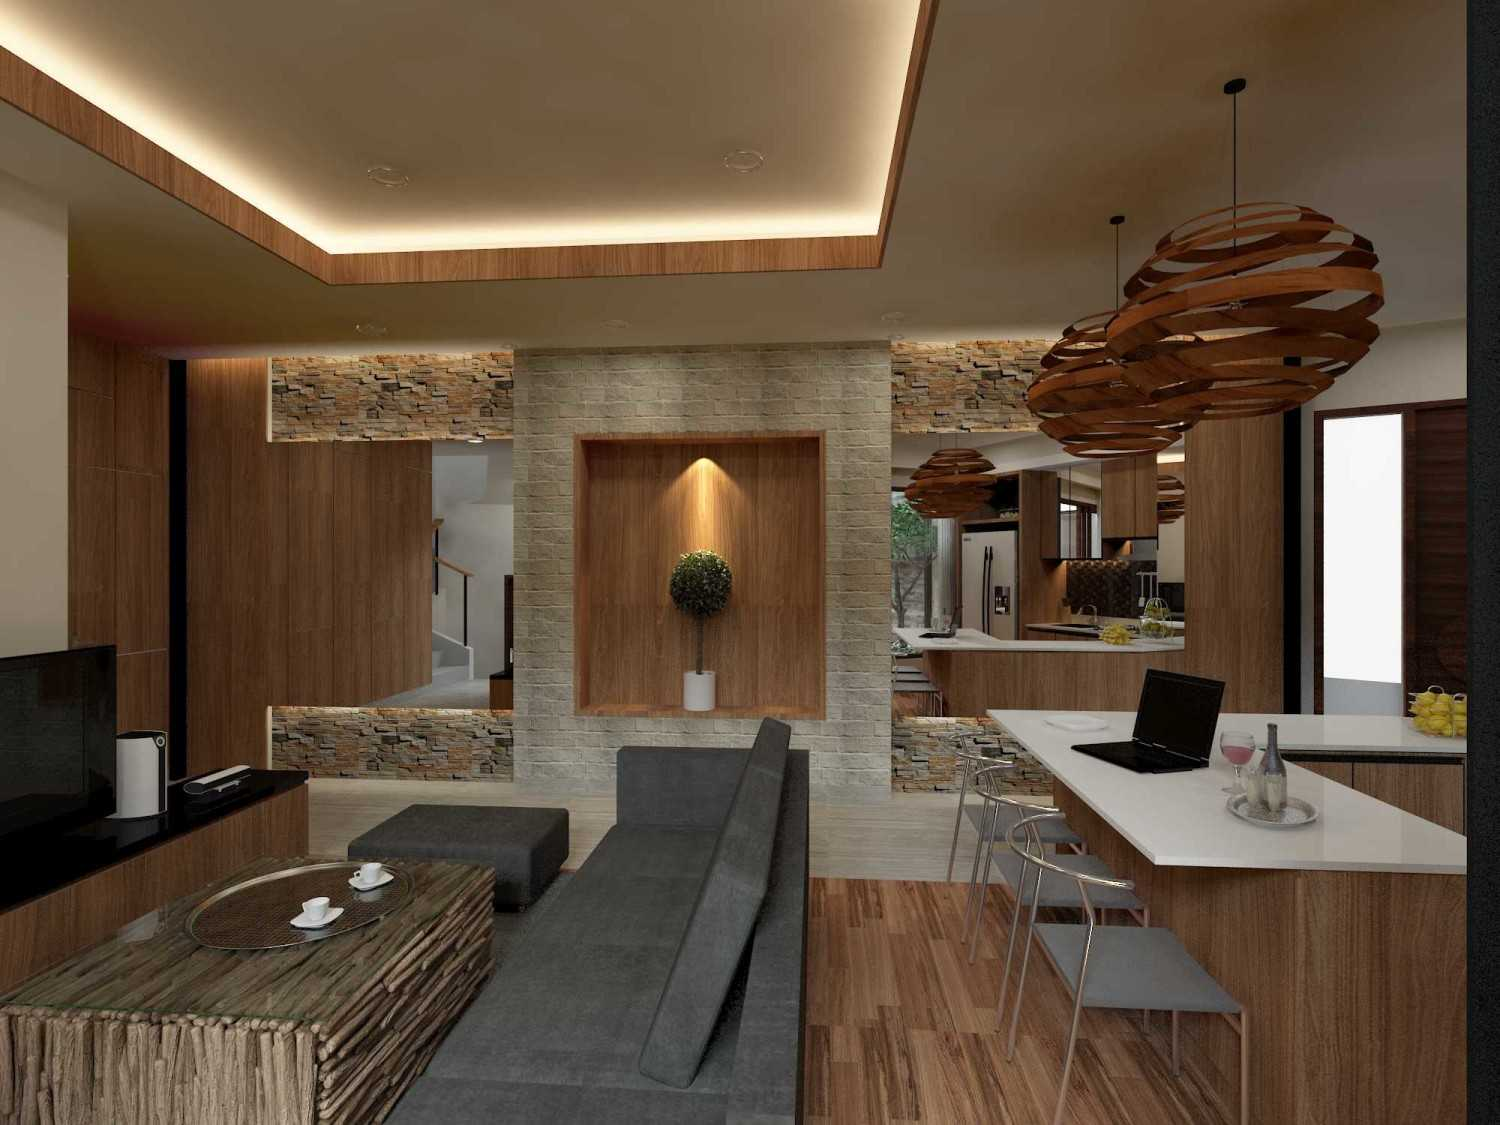 Alima Studio Residential At Bali Bali, Indonesia Bali, Indonesia Living And Dining Area  25607